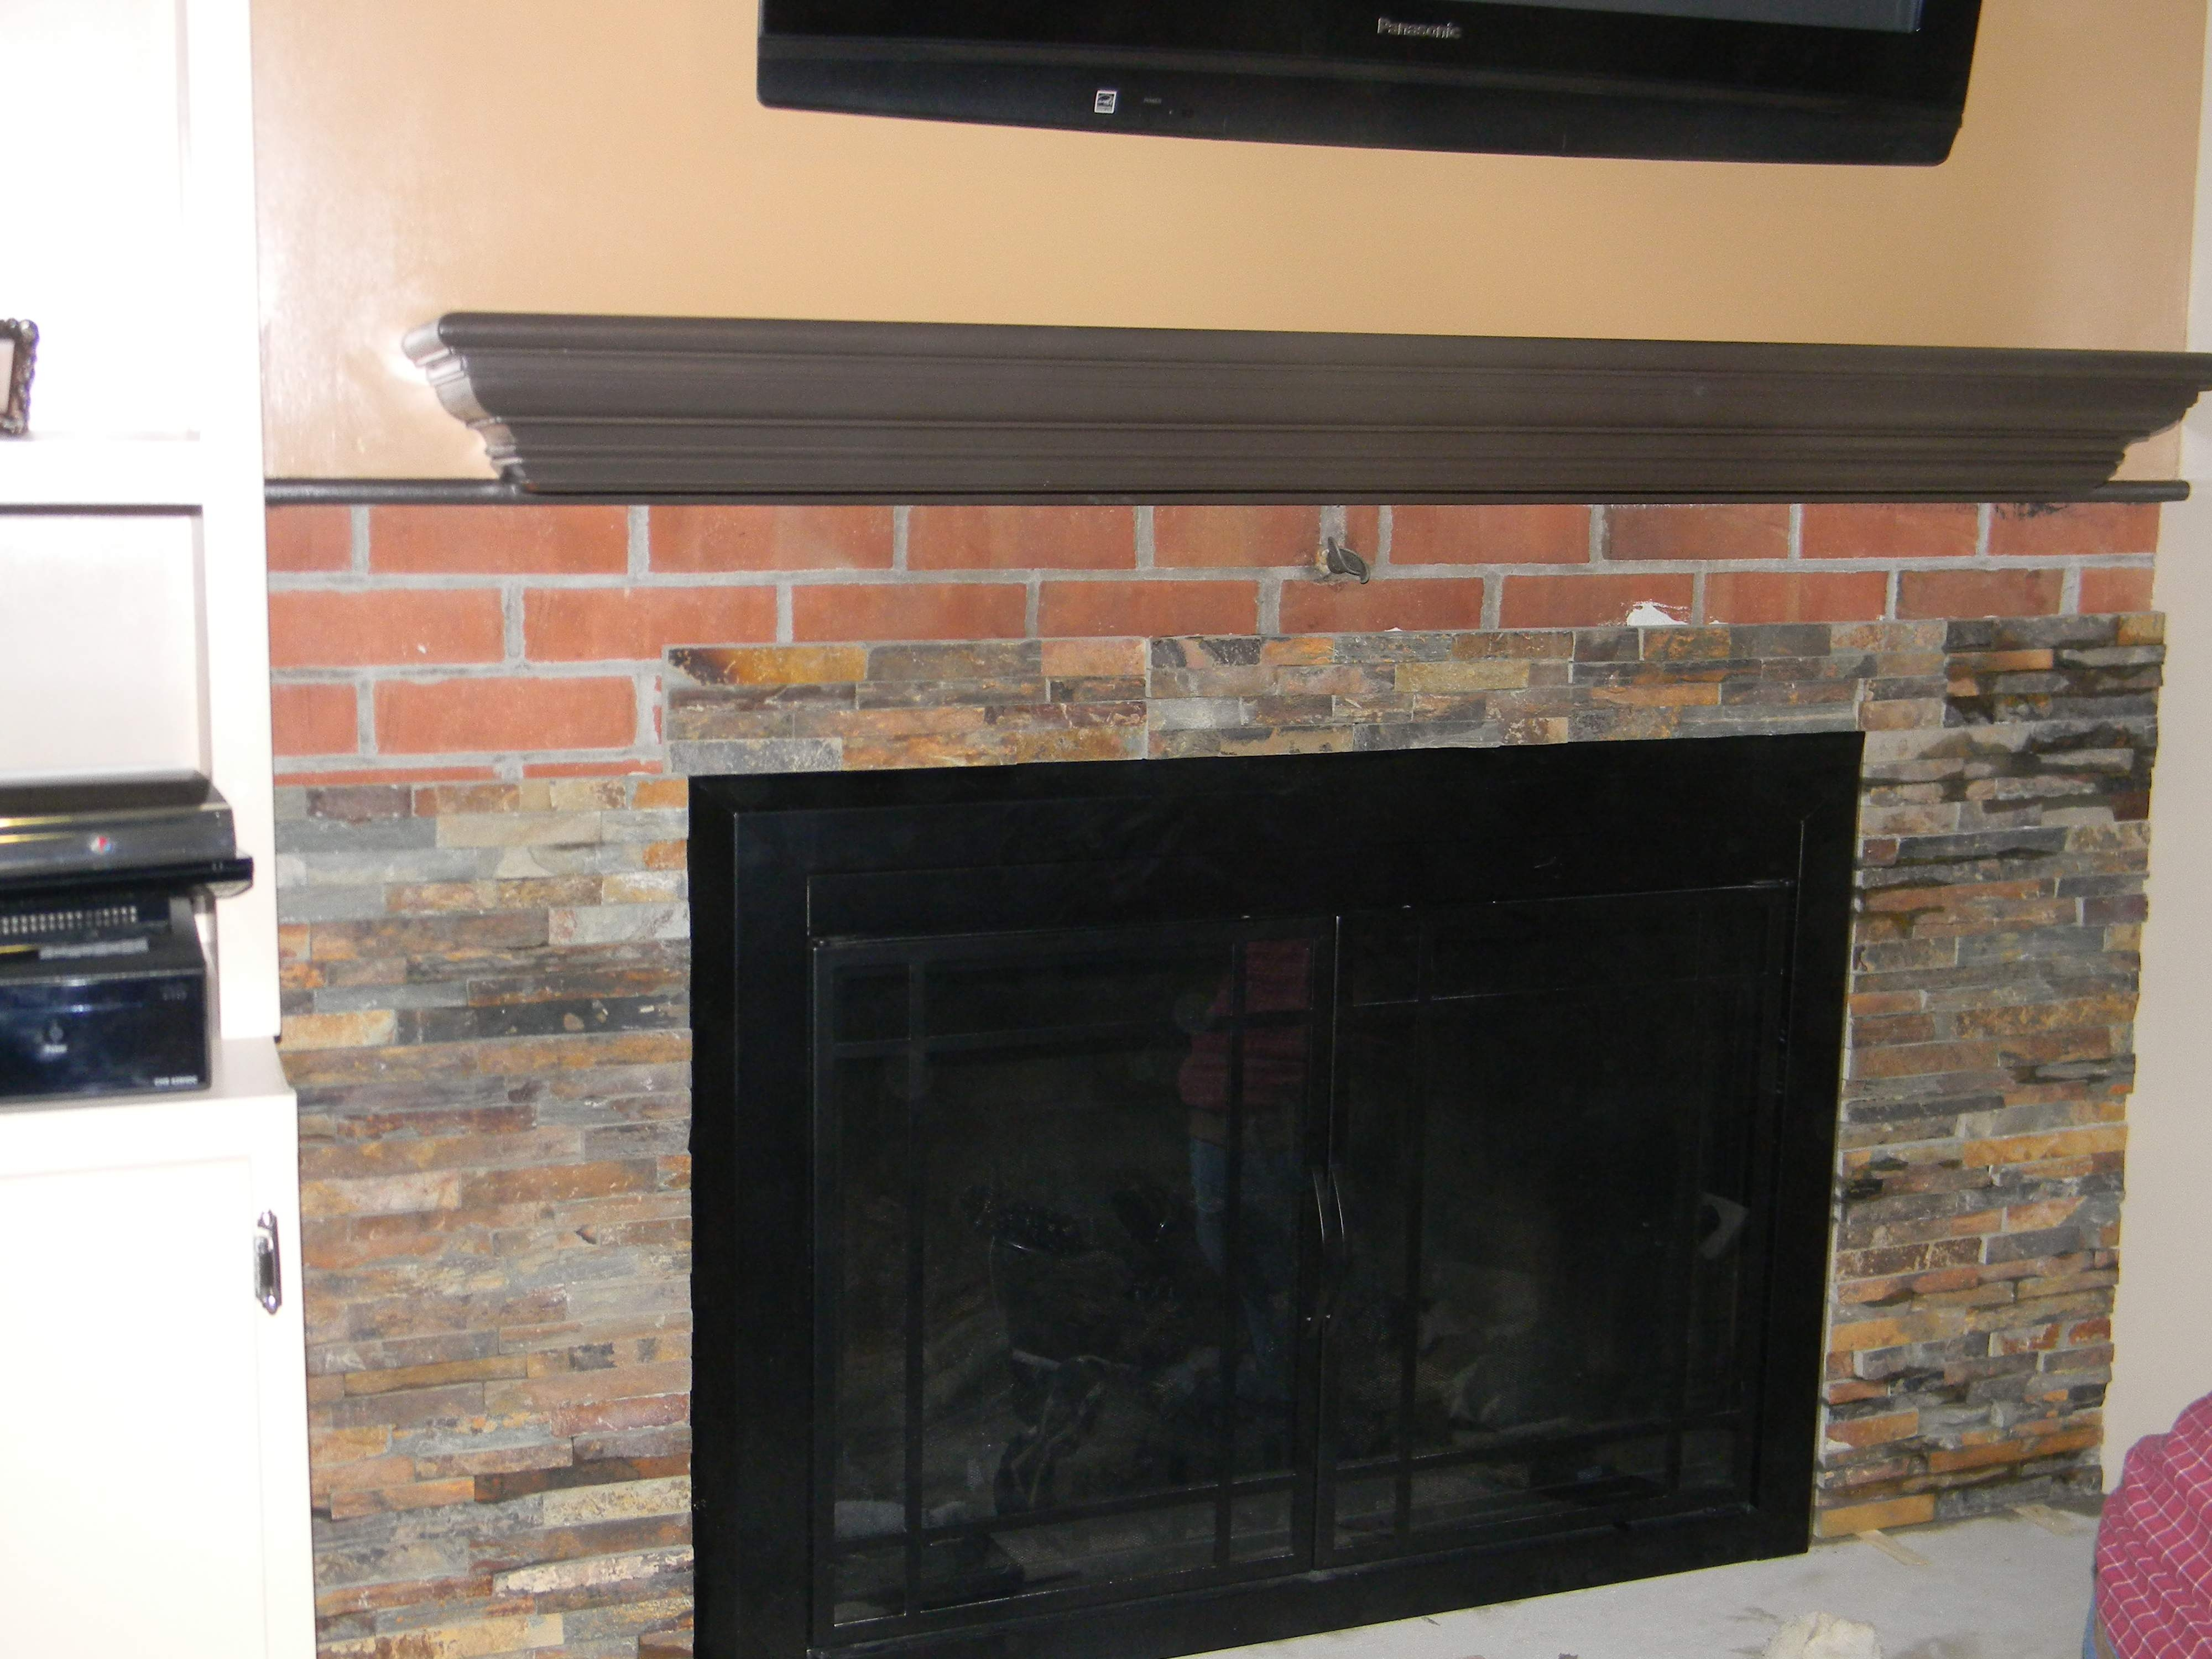 ideas to cover brick fireplace ideas to cover brick fireplace new cover brick fireplace with faux stone bjhryz